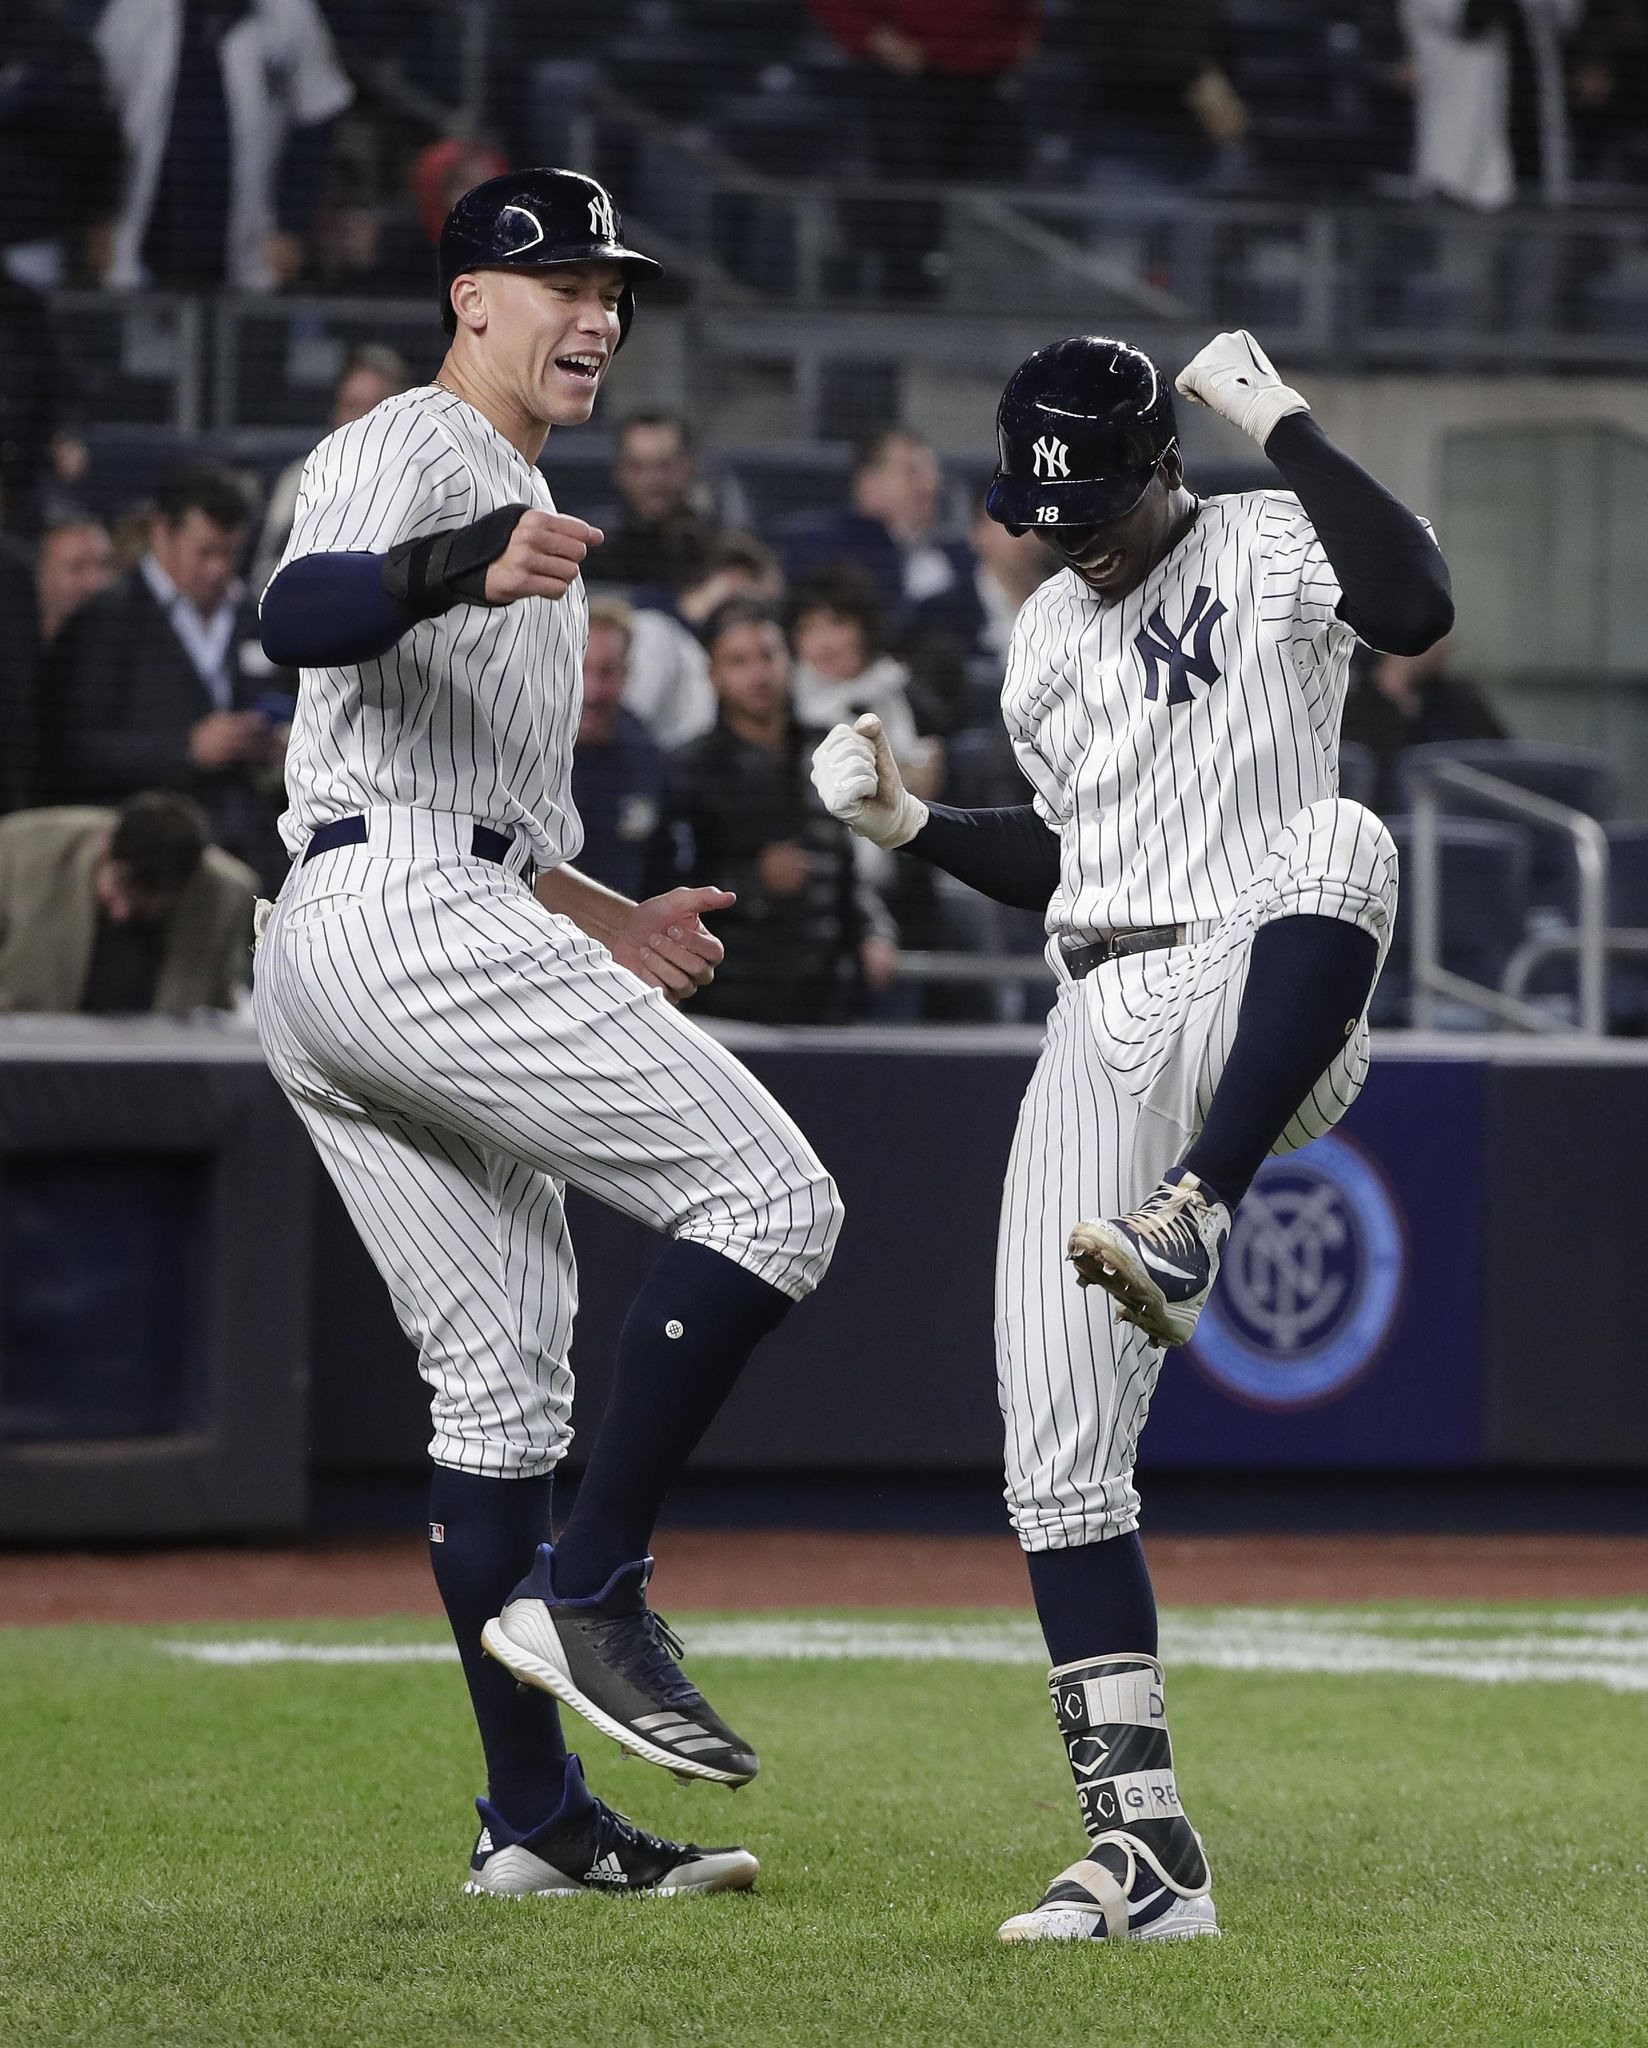 Aptopix_twins_yankees_baseball_58331_s1648x2048